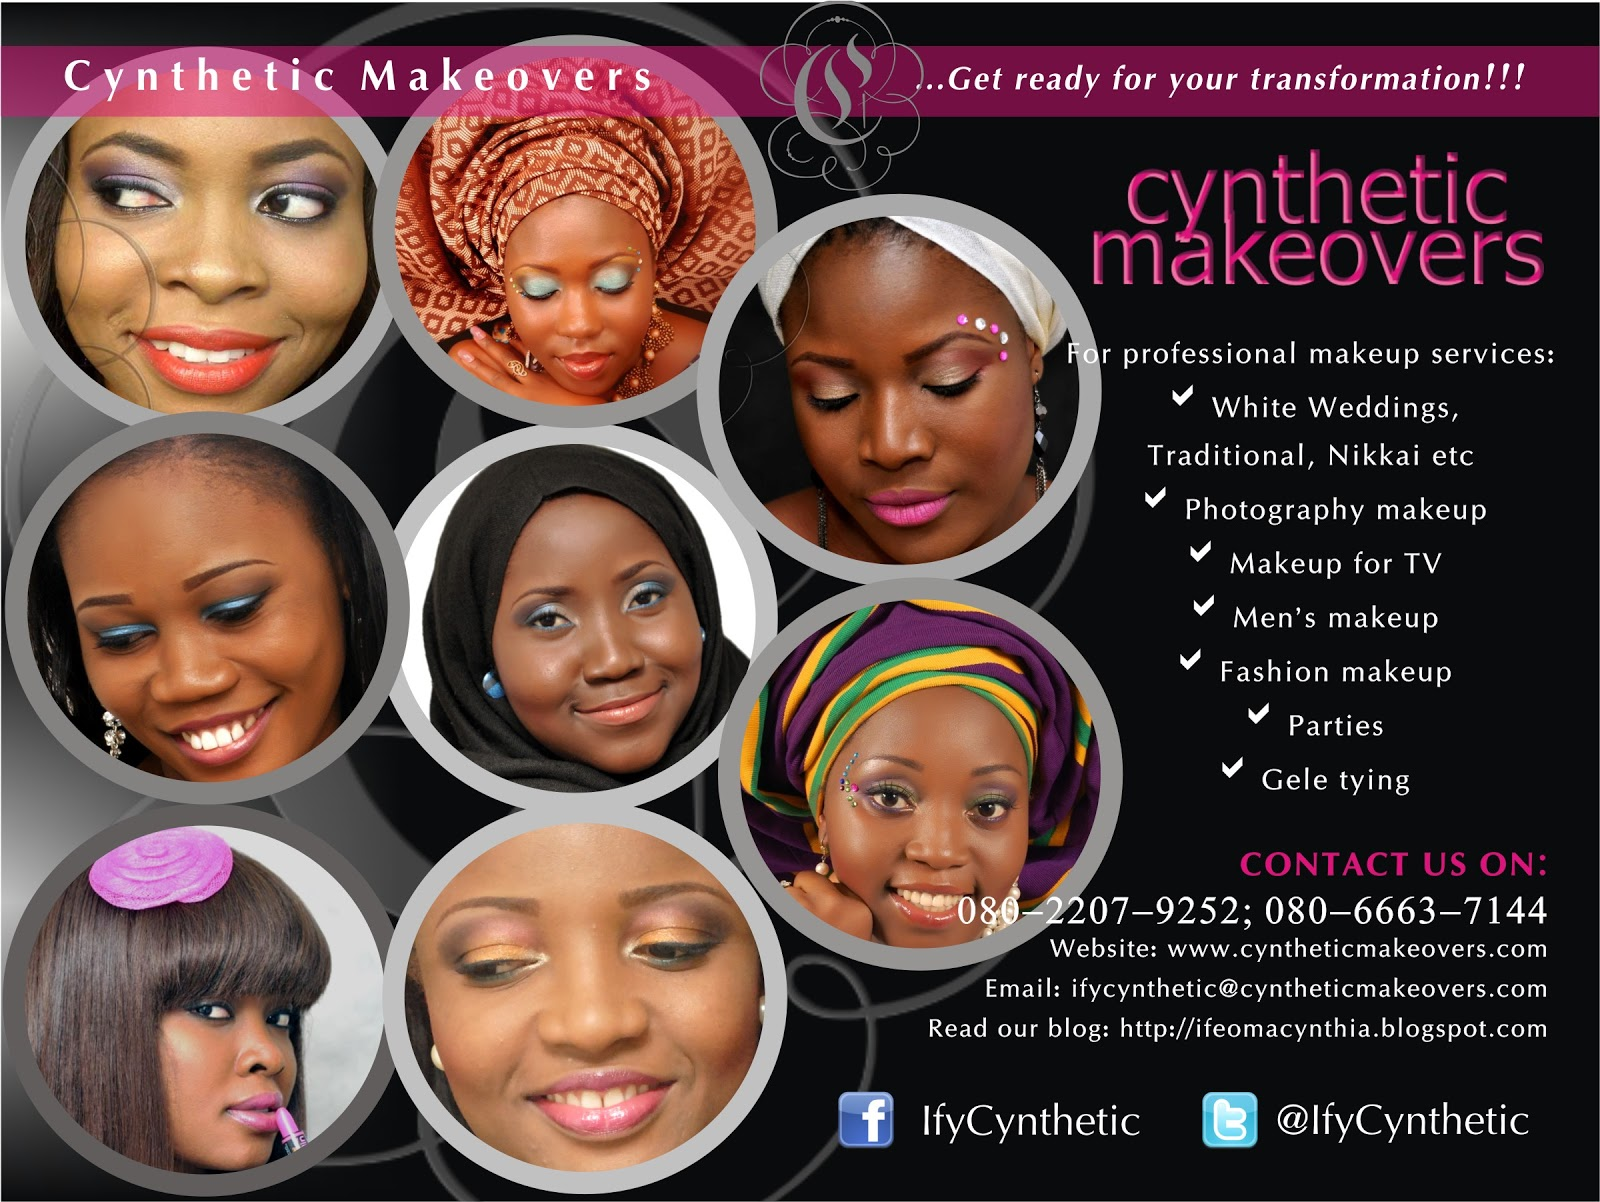 Cynthetic Makeovers flyer